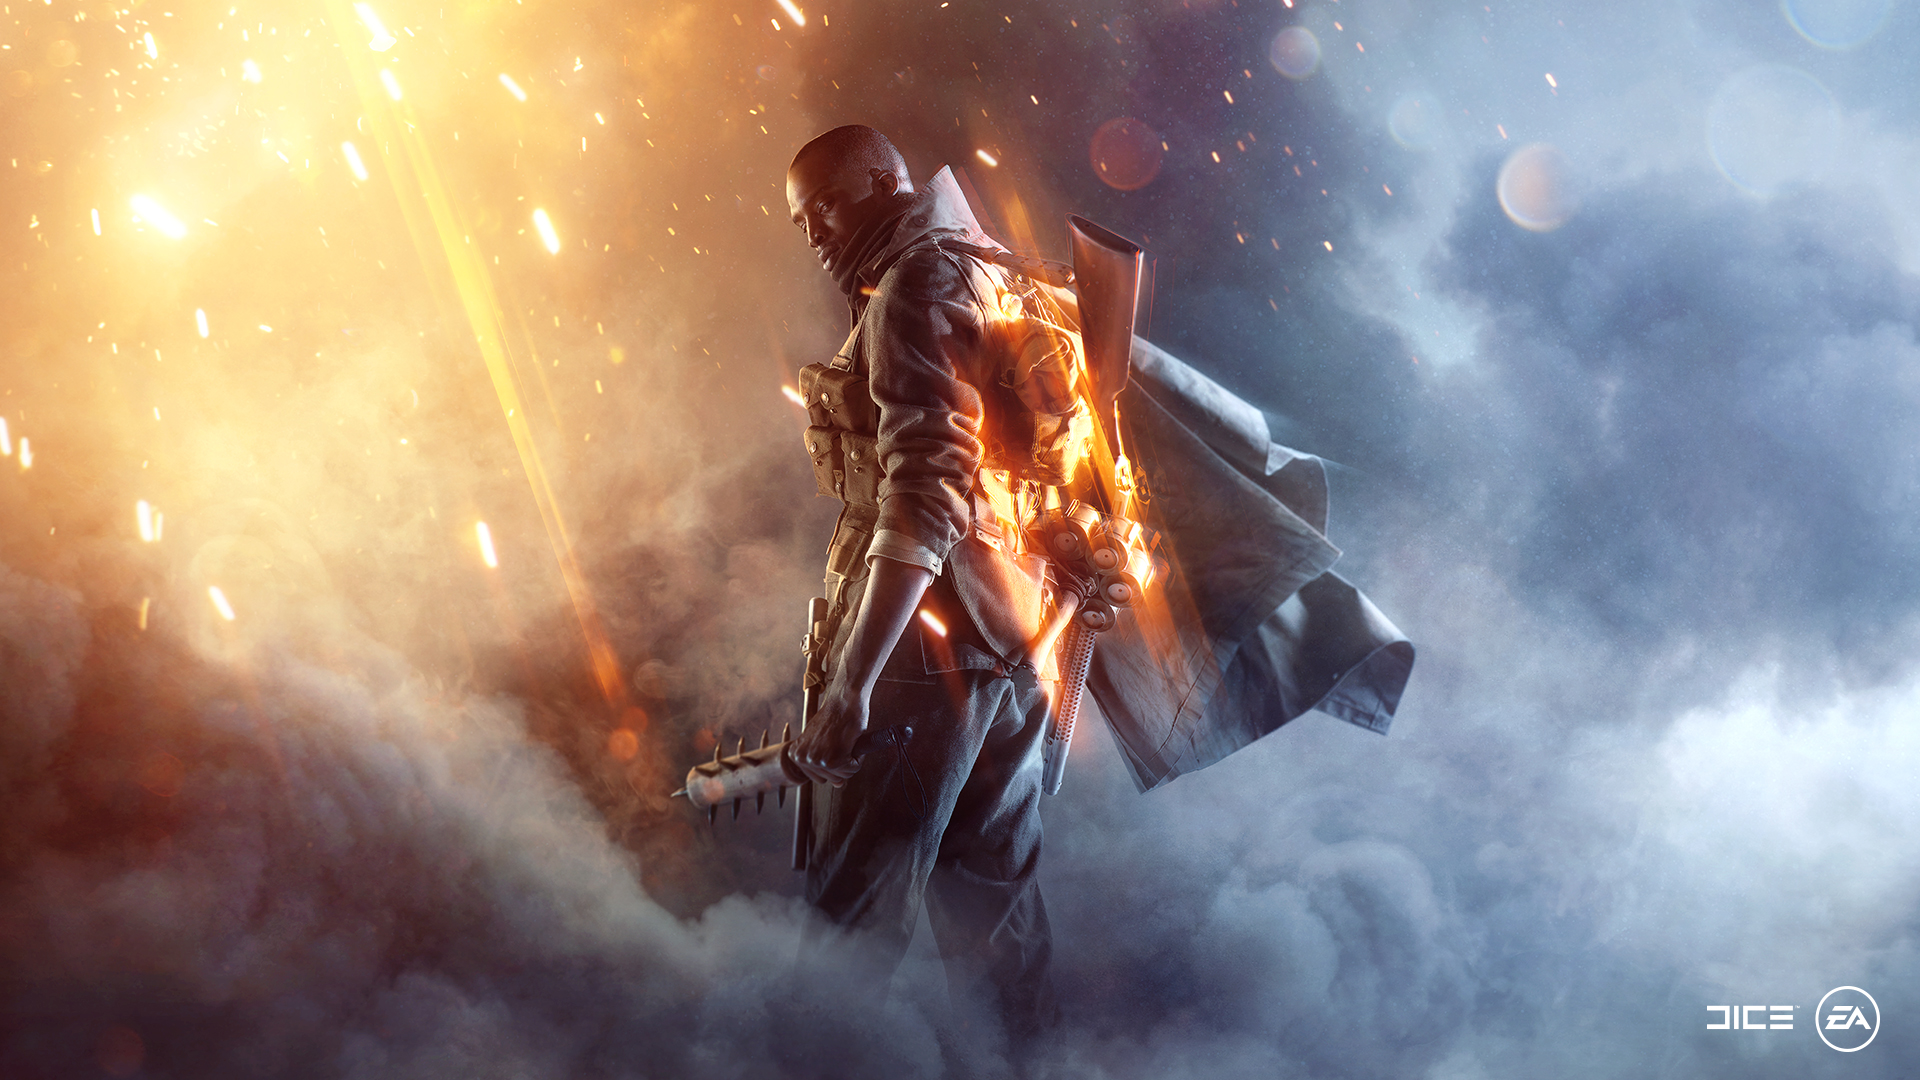 Battlefield 1 Wallpaper